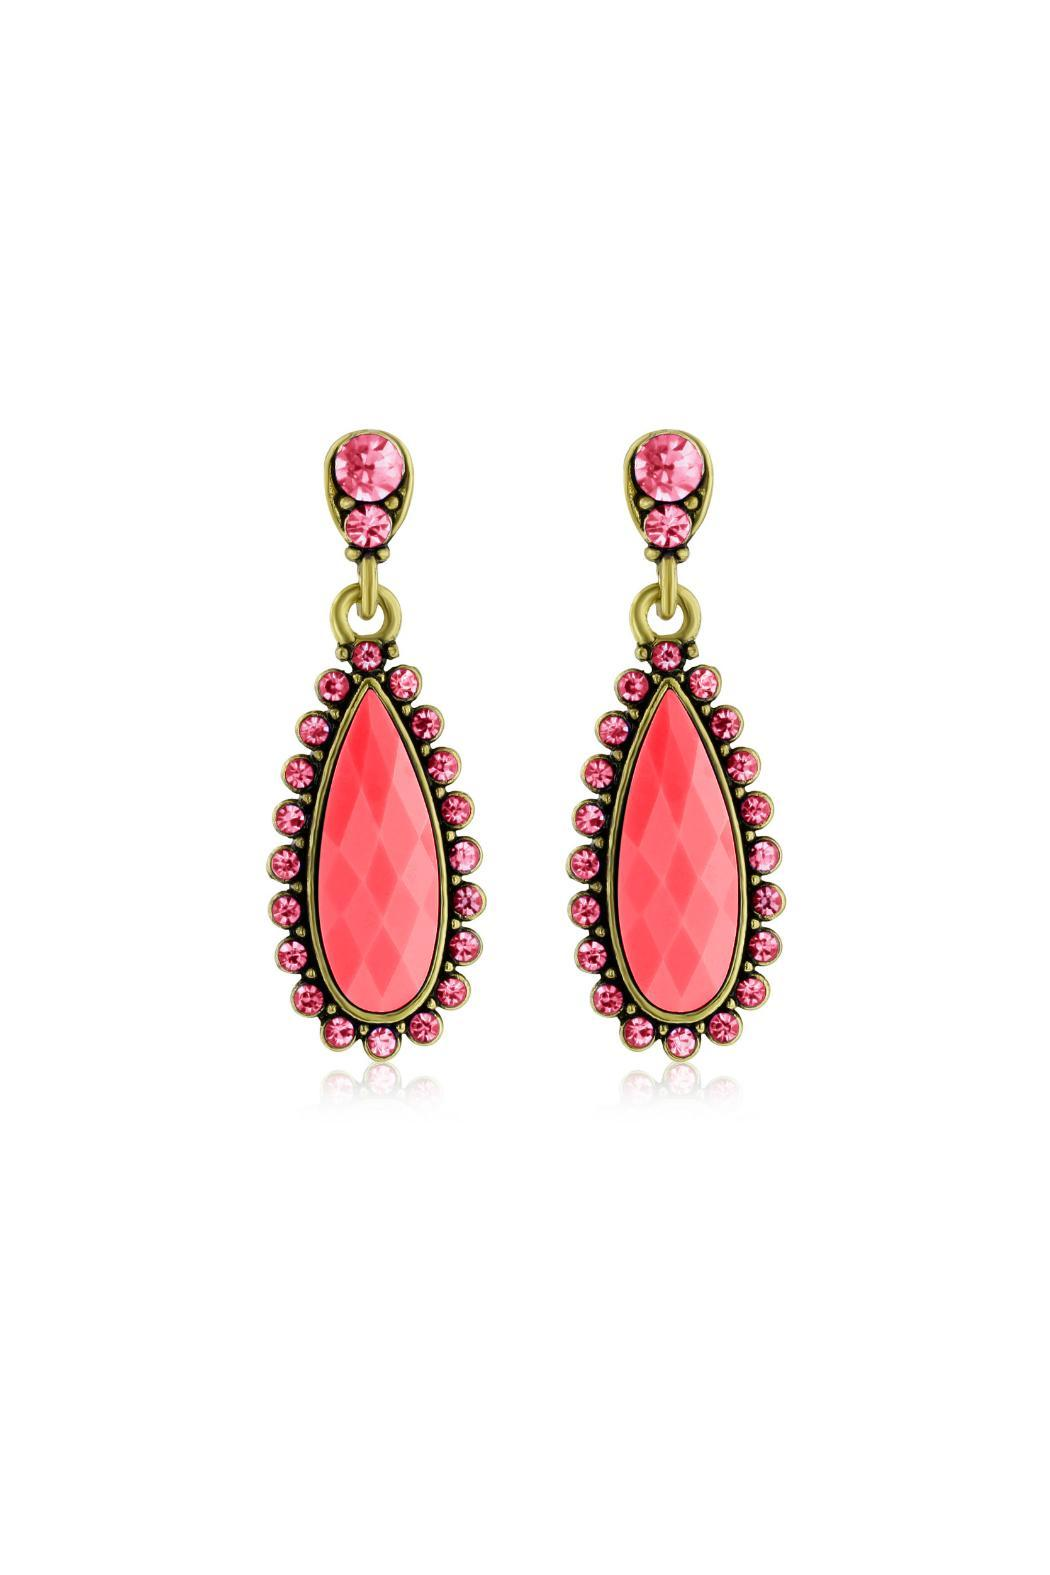 6th Borough Boutique Pink Pear Earrings - Main Image